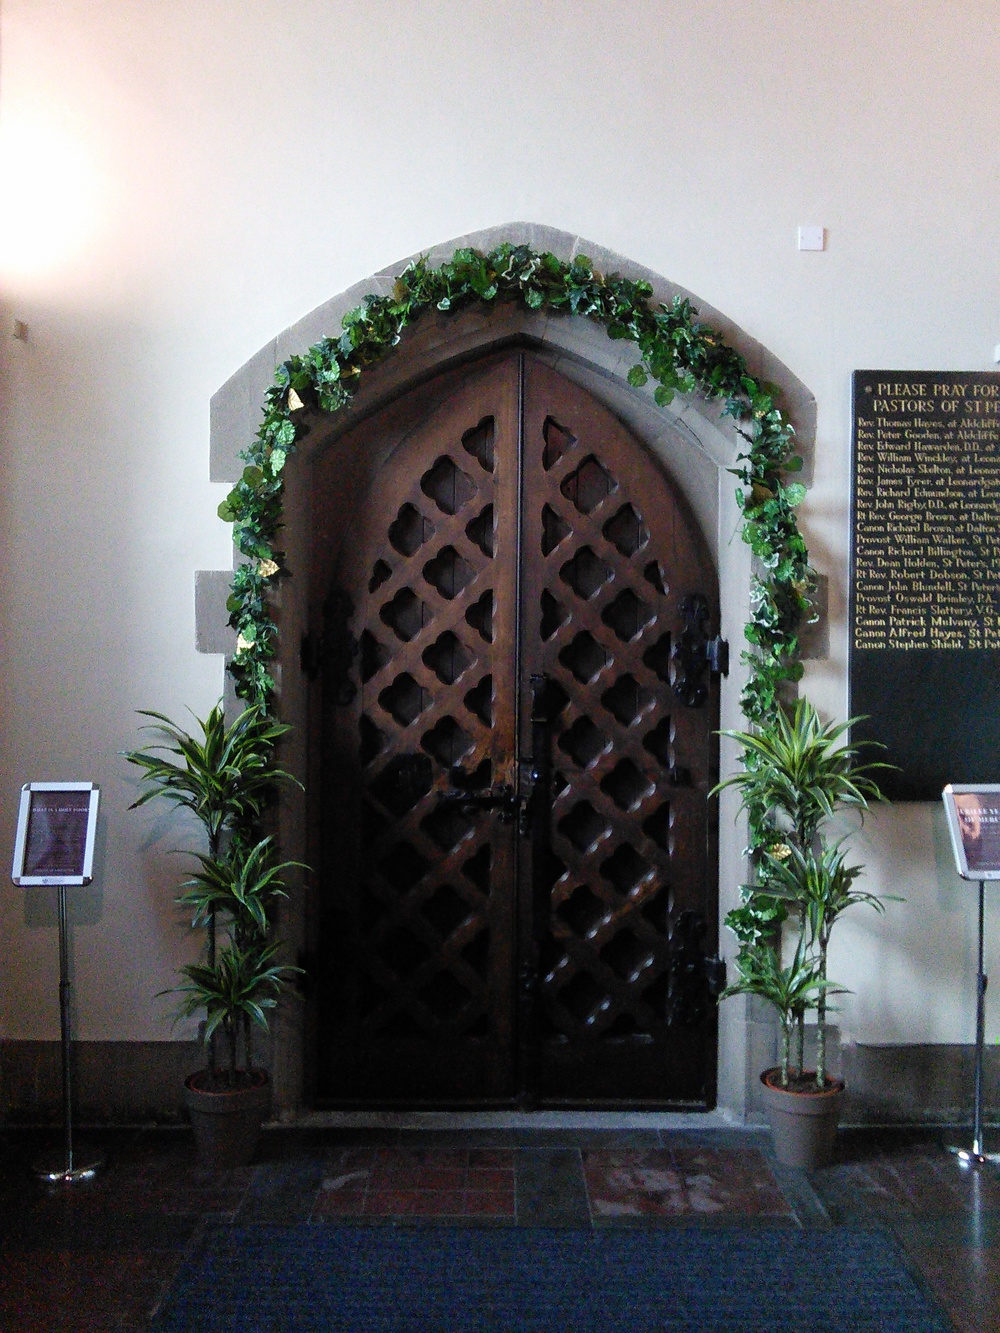 The Holy Door in the Cathedral. Crossing the threshold of the Doorway symbolises our own journey, our desire to enter into the Jubilee Grace of Mercy.